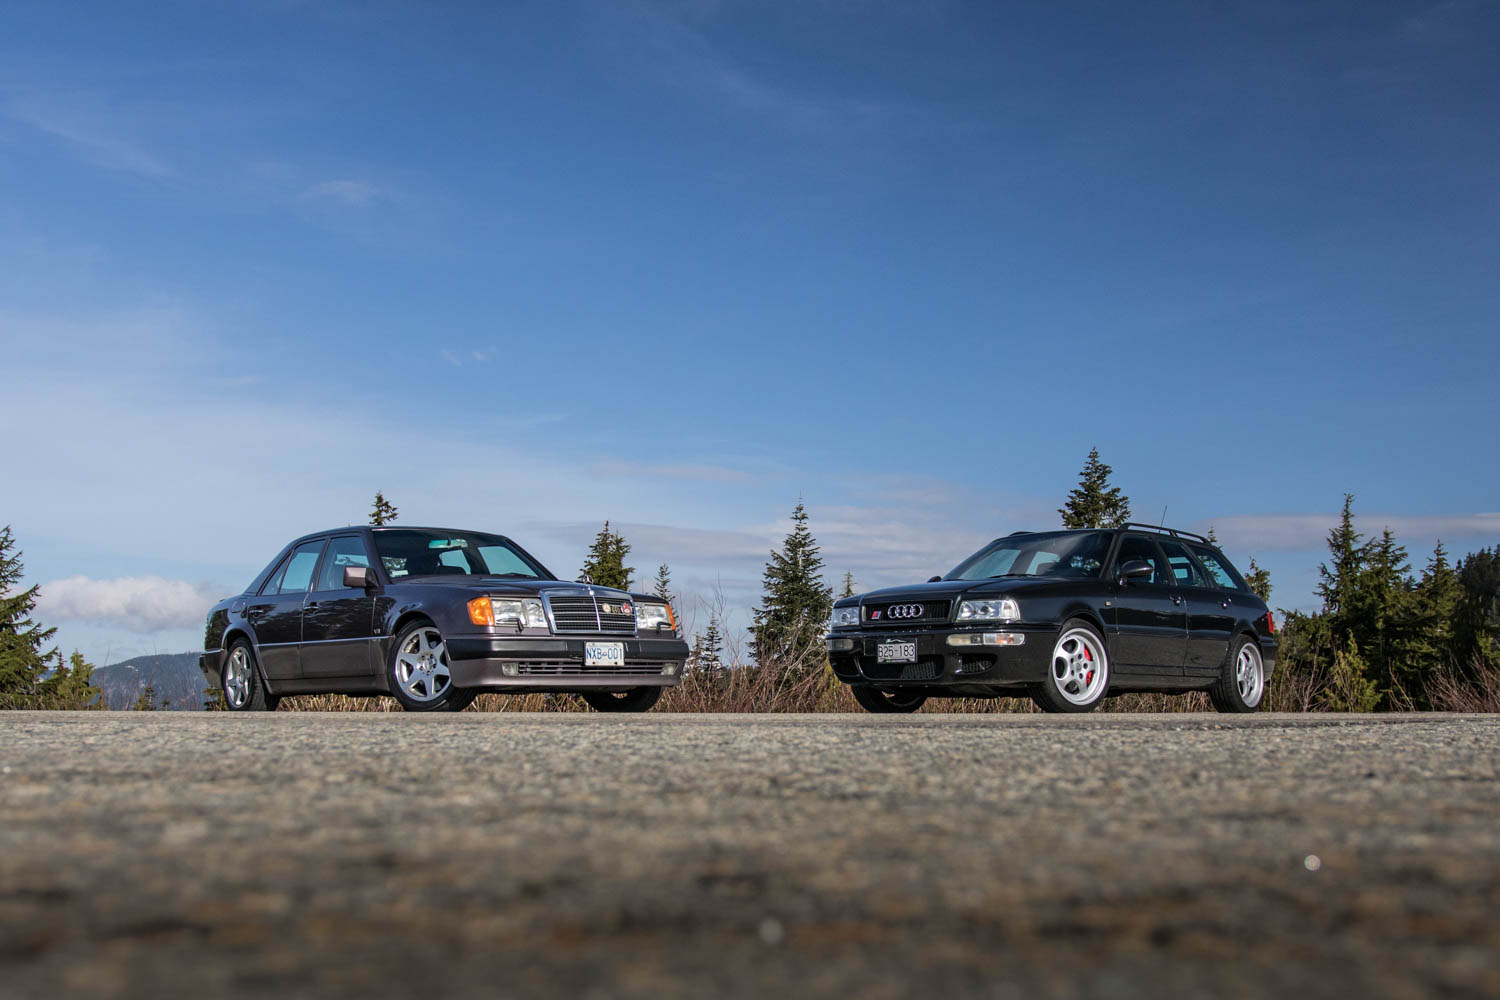 Driving the Mercedes-Benz and Audi cars built by Porsche